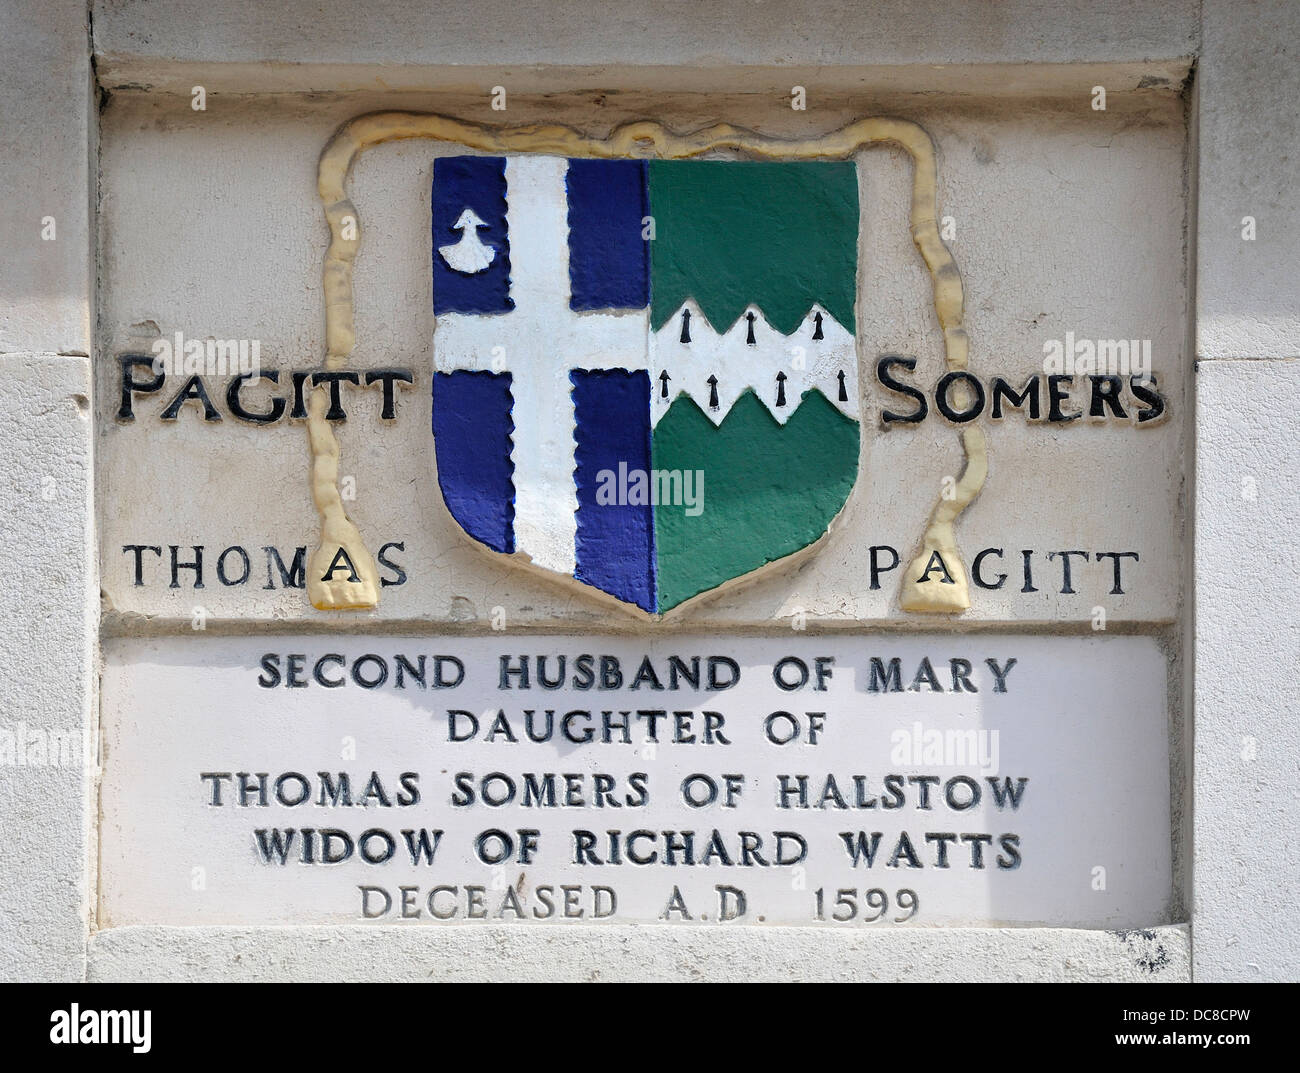 Rochester, Kent, England, UK. 'The Six Poor Travellers' House' Commemorative plaque on the facade.- - Stock Image